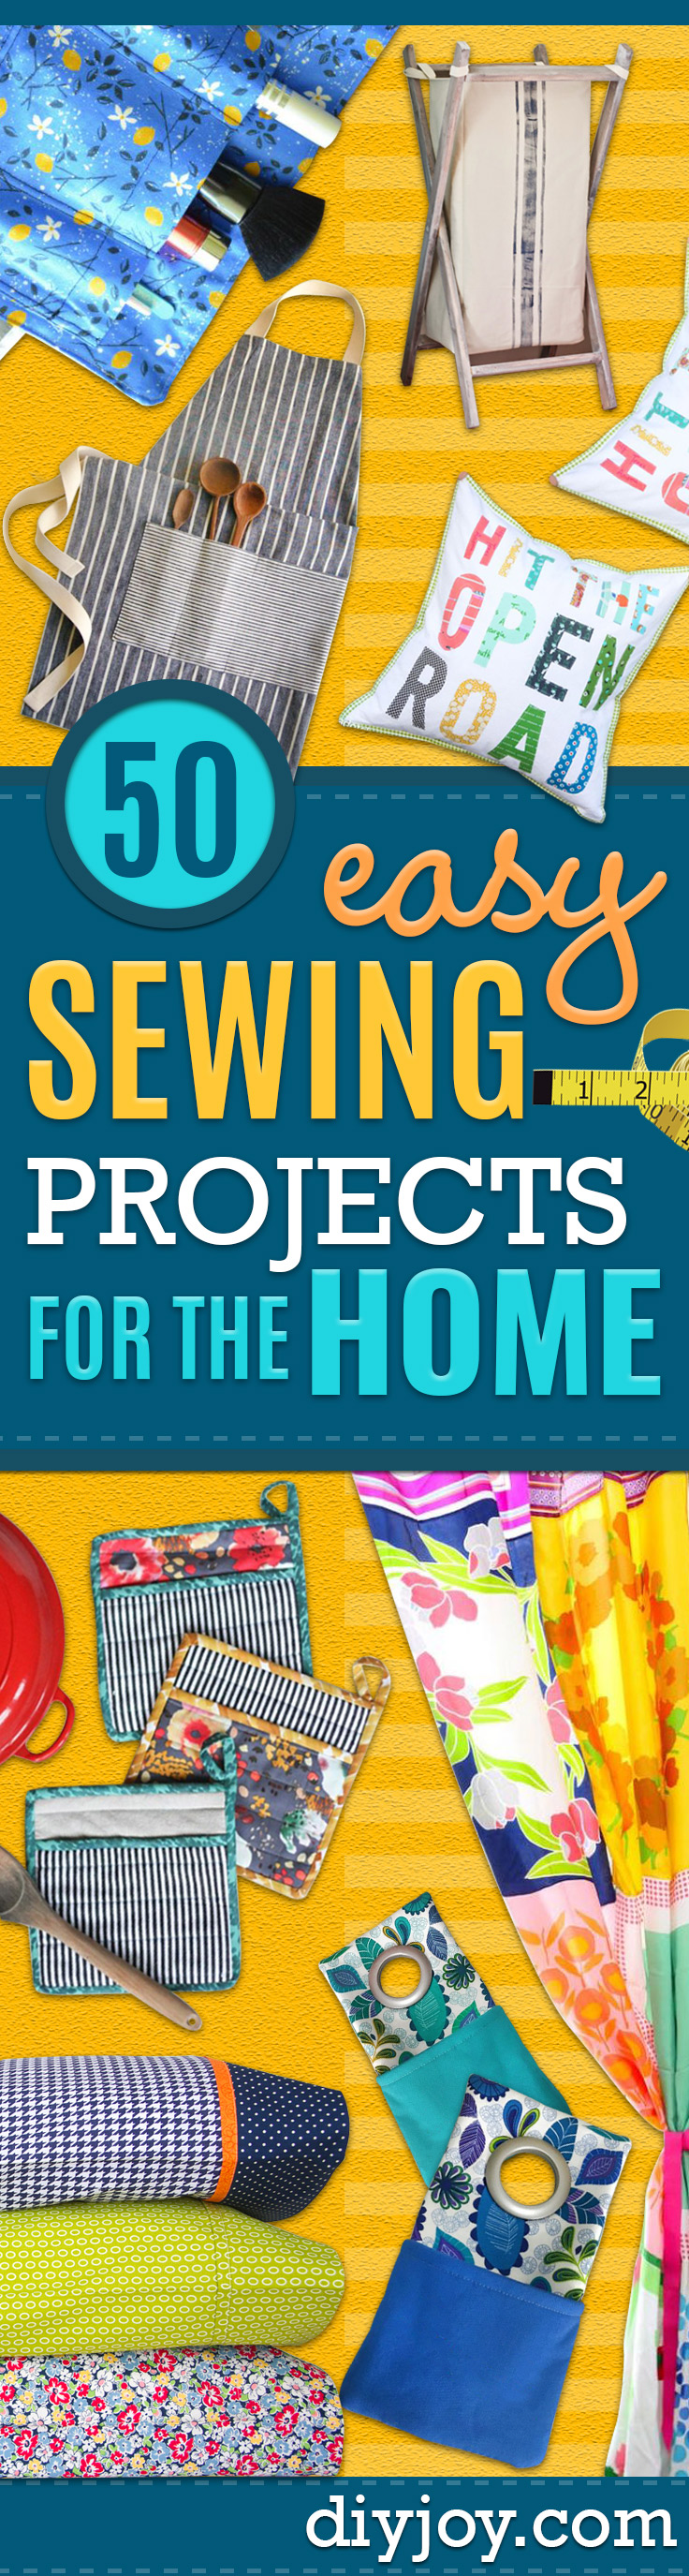 Sewing Projects for The Home - Free DIY Sewing Patterns, Easy Ideas and Tutorials for Curtains, Upholstery, Napkins, Pillows and Decor Project Idea to Sew Pinterest - Tutorial or Pattern Included